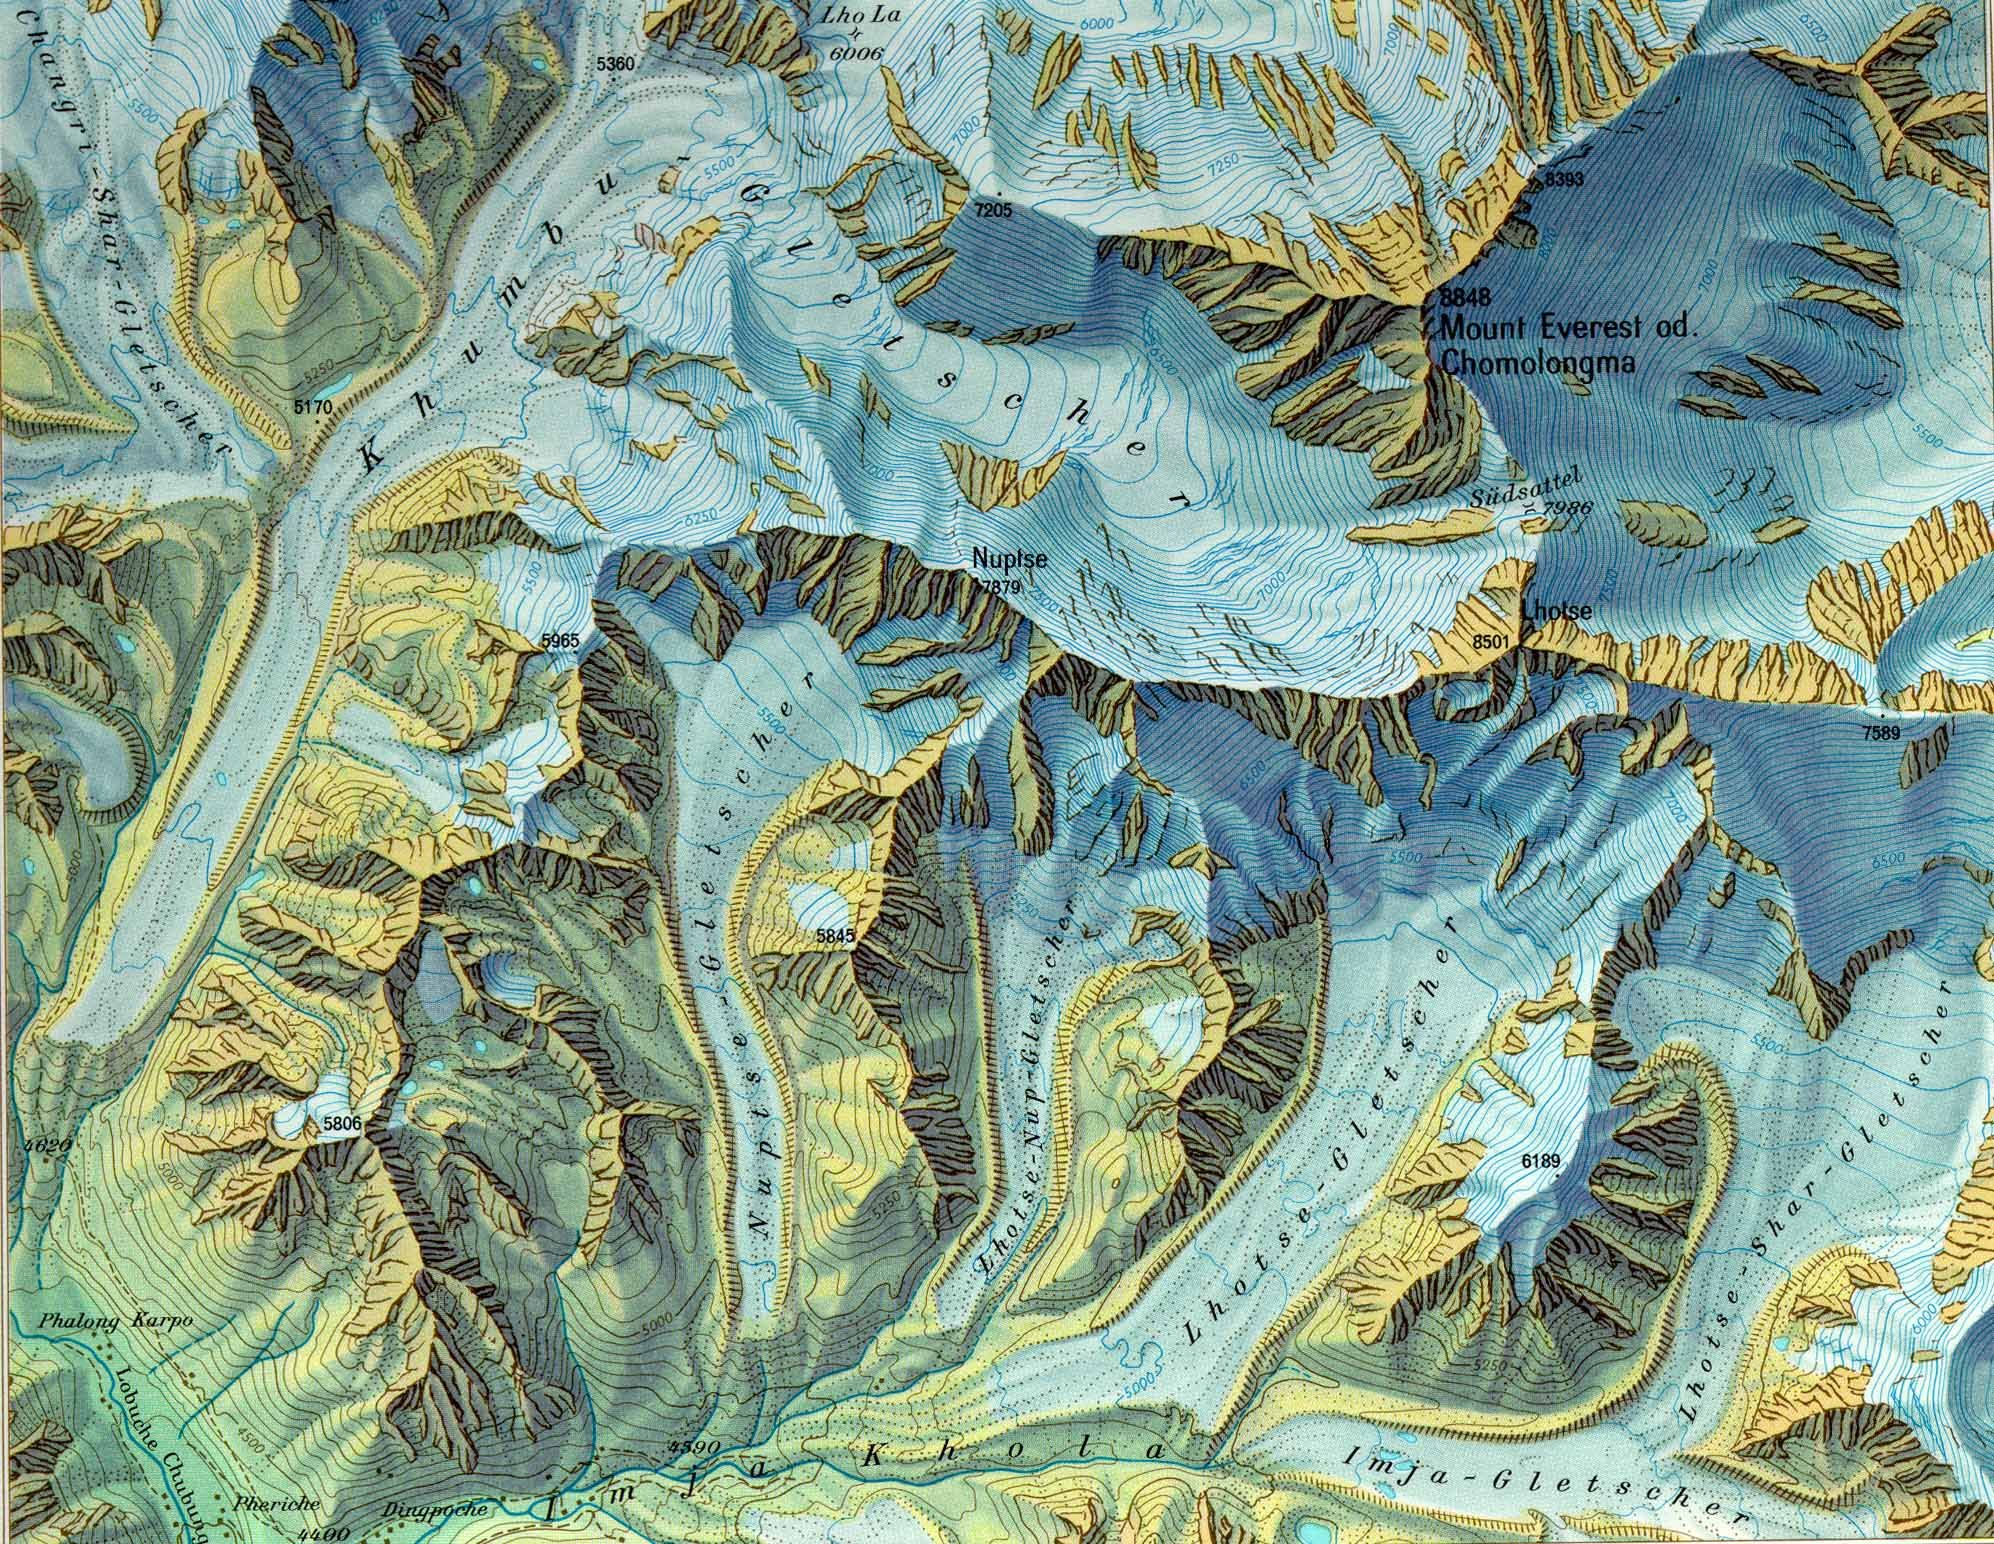 Himalayan glaciers beautiful old map how much of them is left